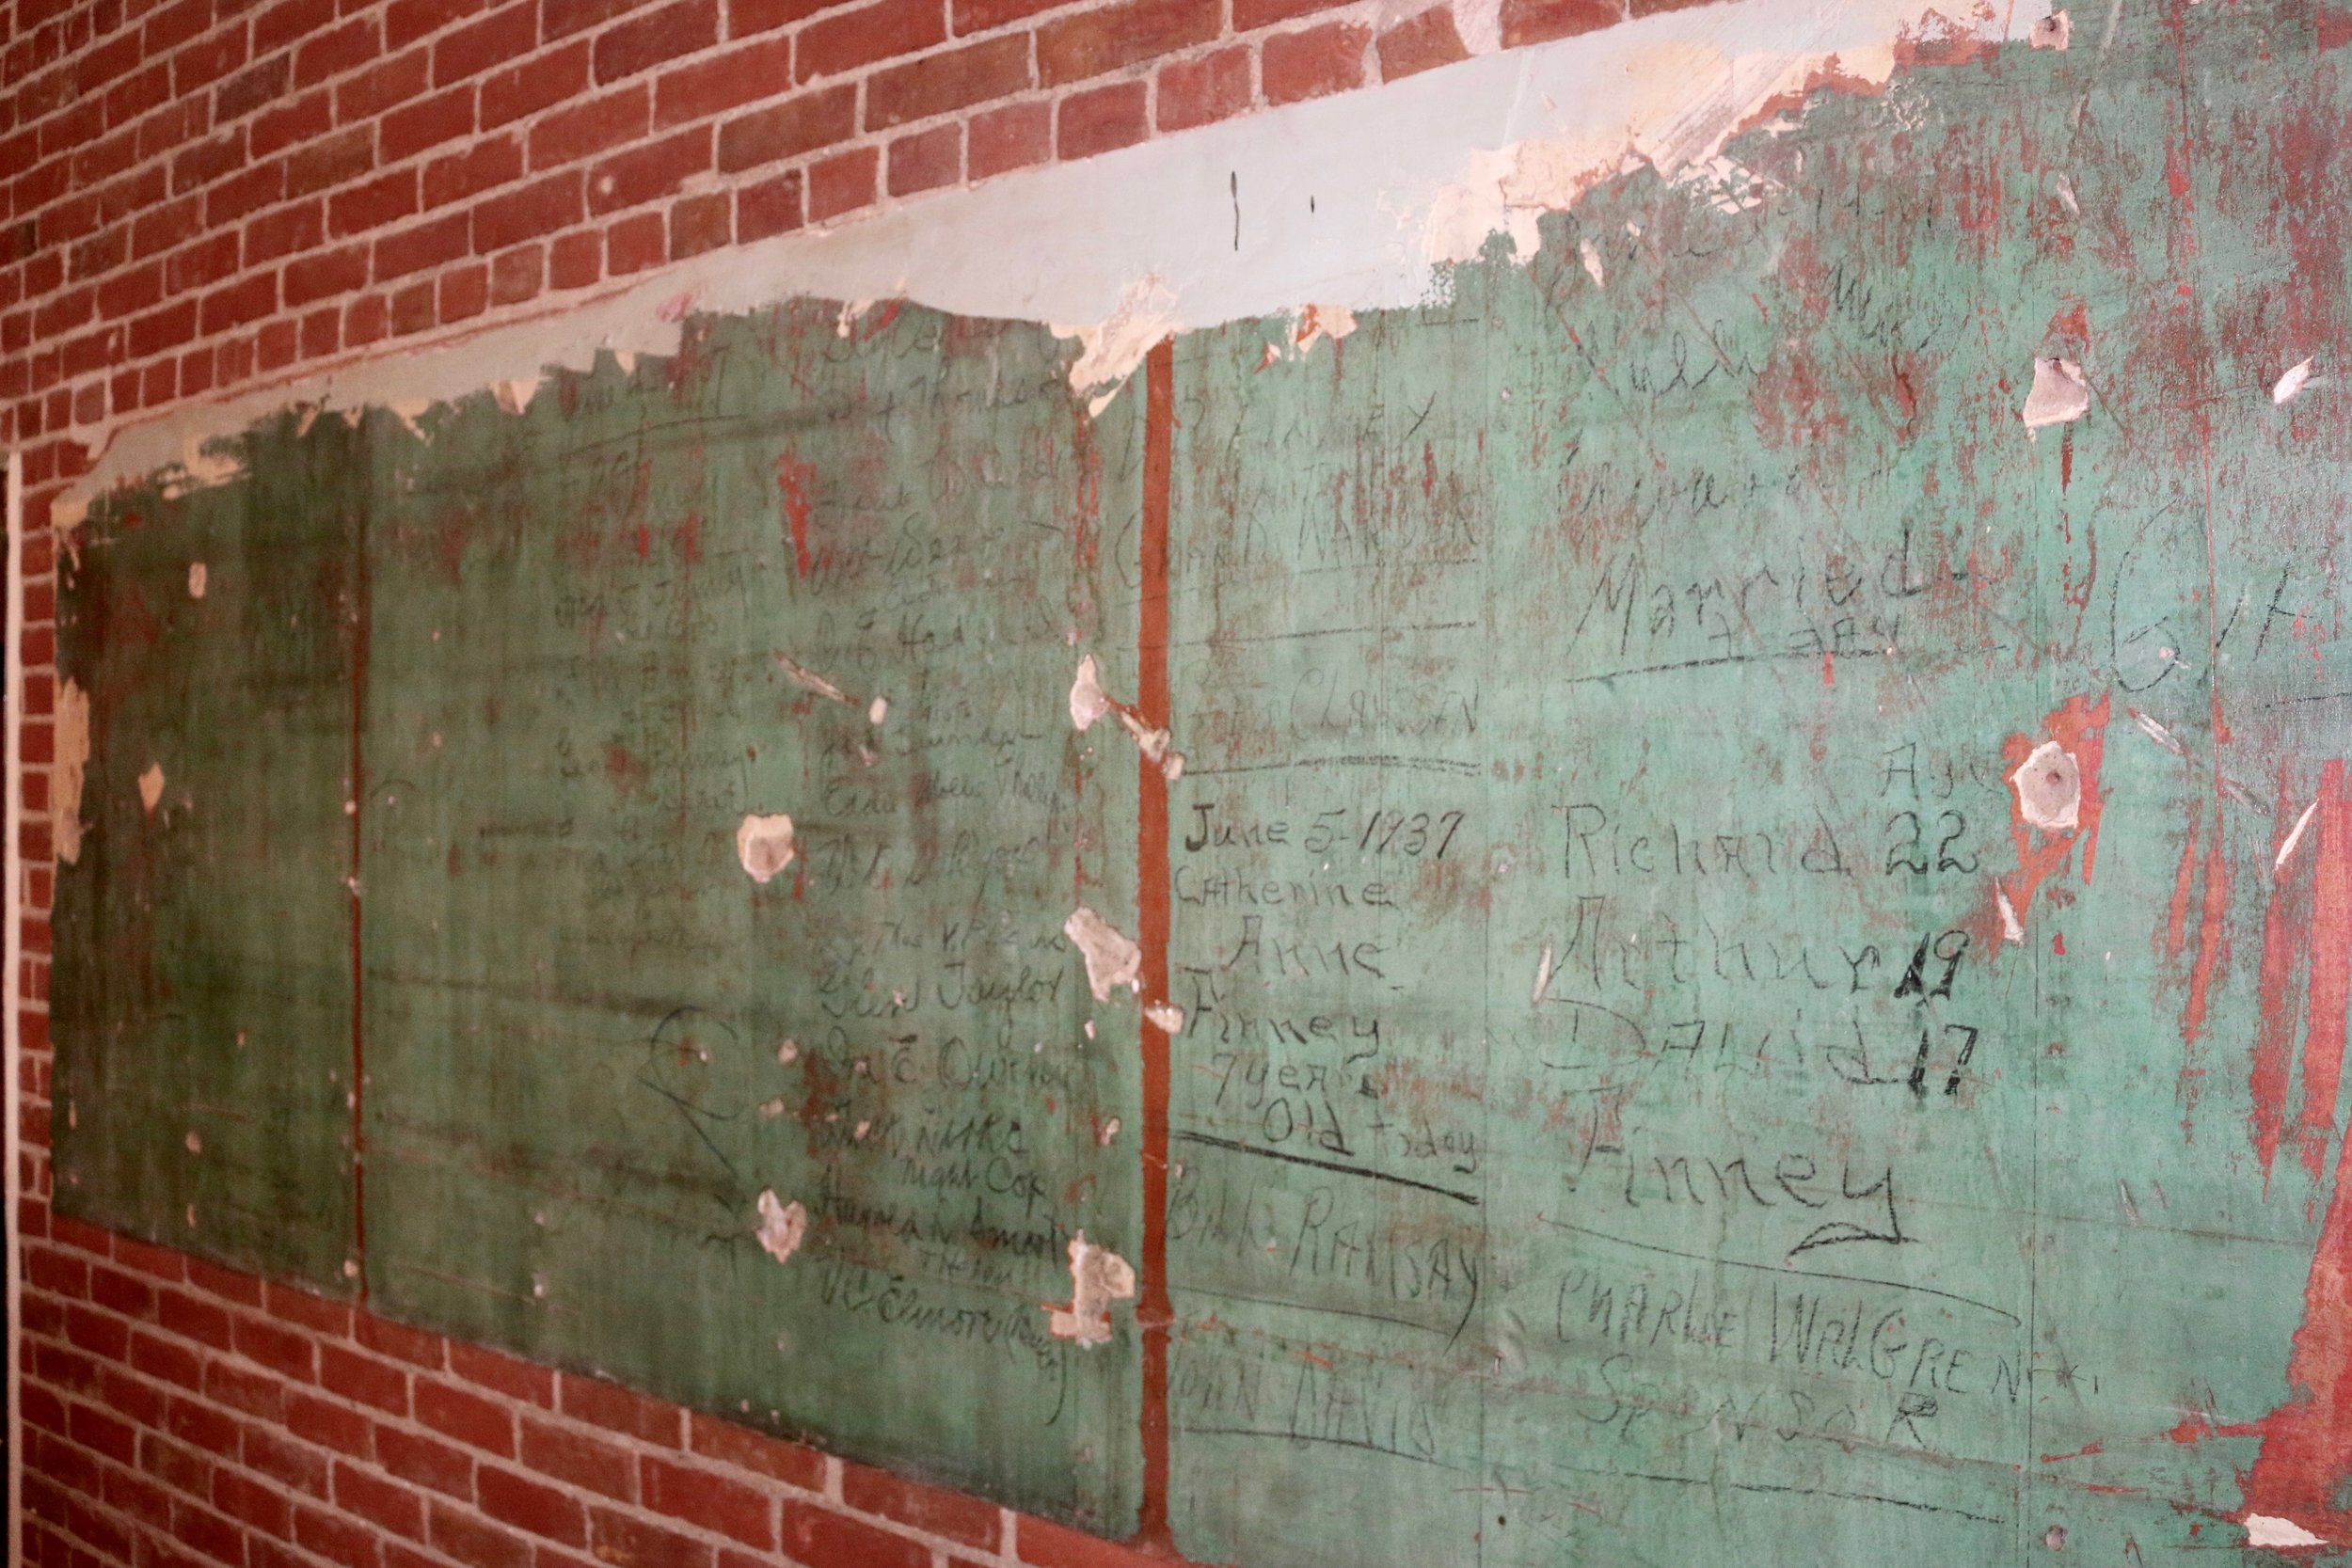 Historic names uncovered during renovation